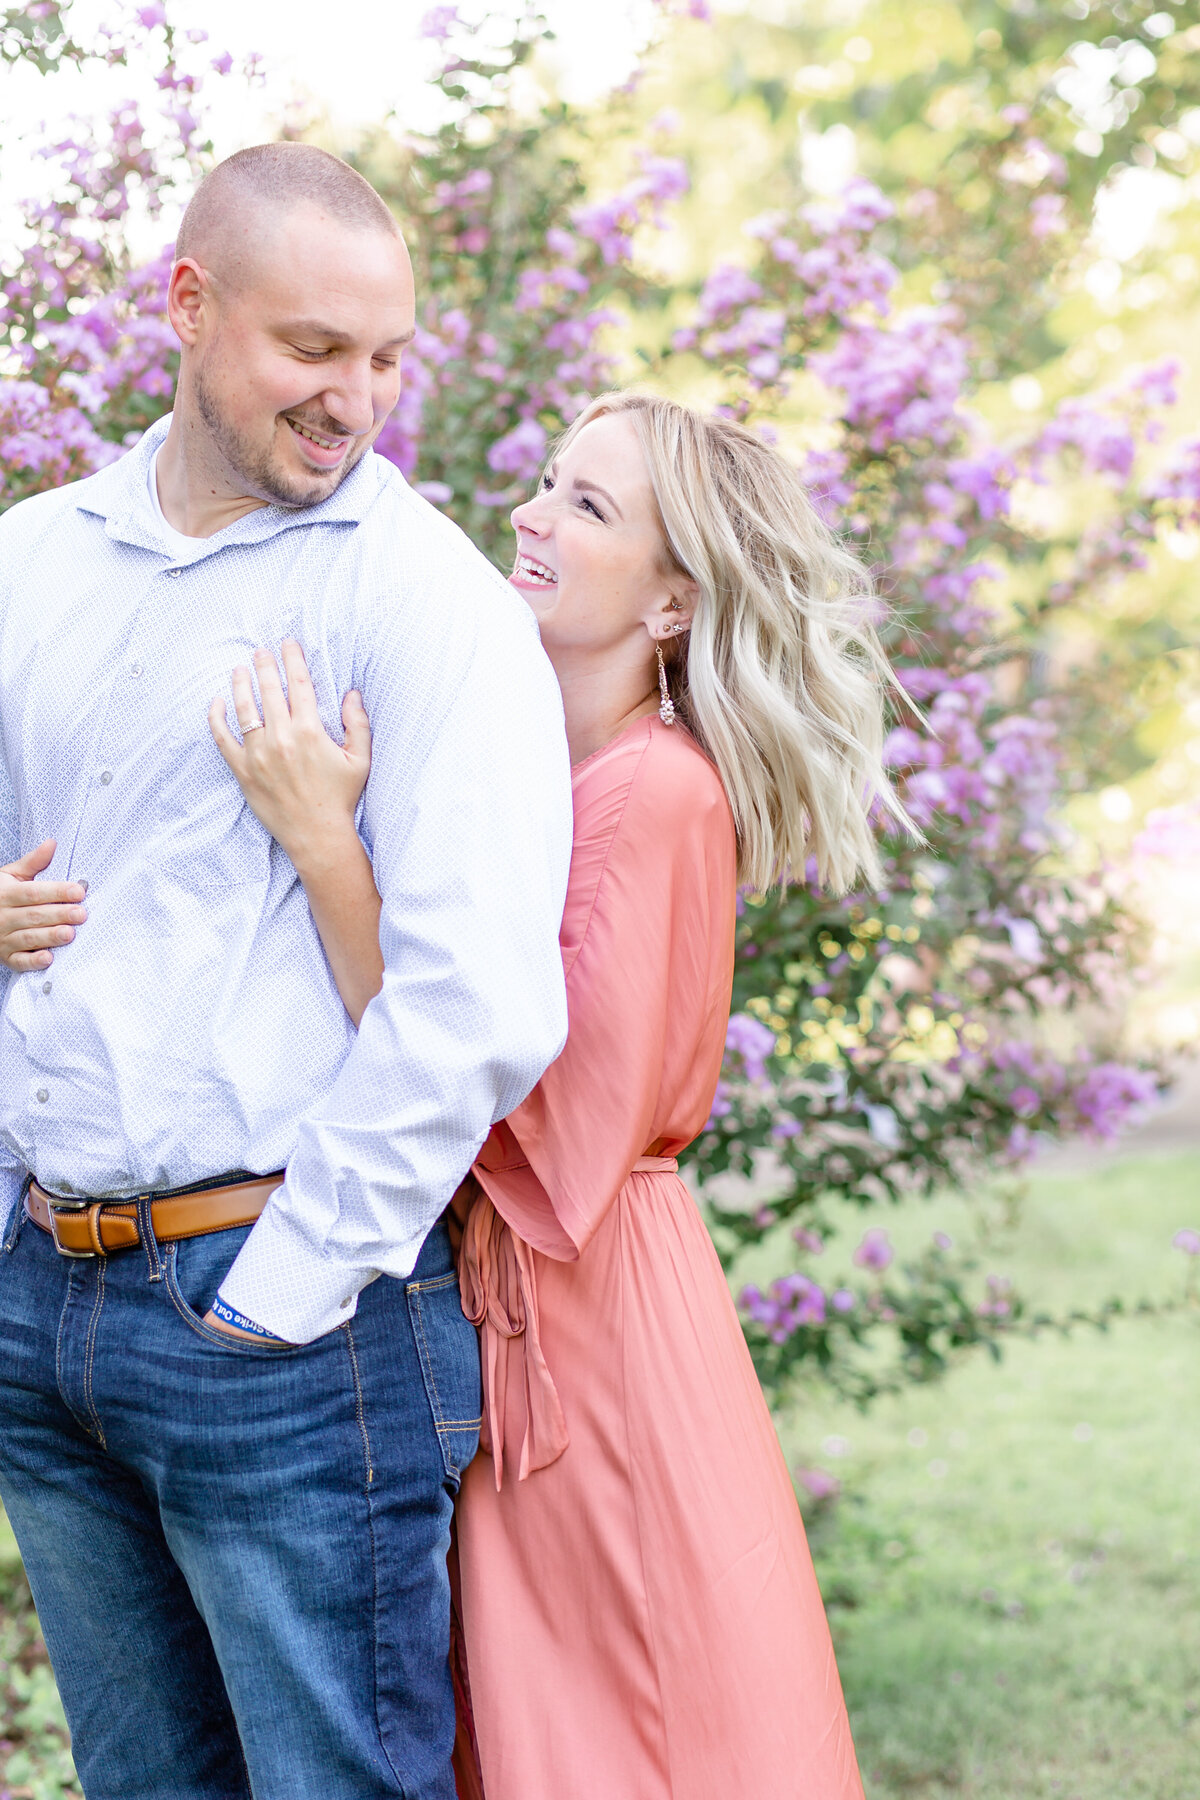 Summer Sunset Engagement Session with pink maxi dress couple laughing  by purple flowers  at Tower Grove Park in St. Louis by Amy Britton Photography Photographer in St. Louis